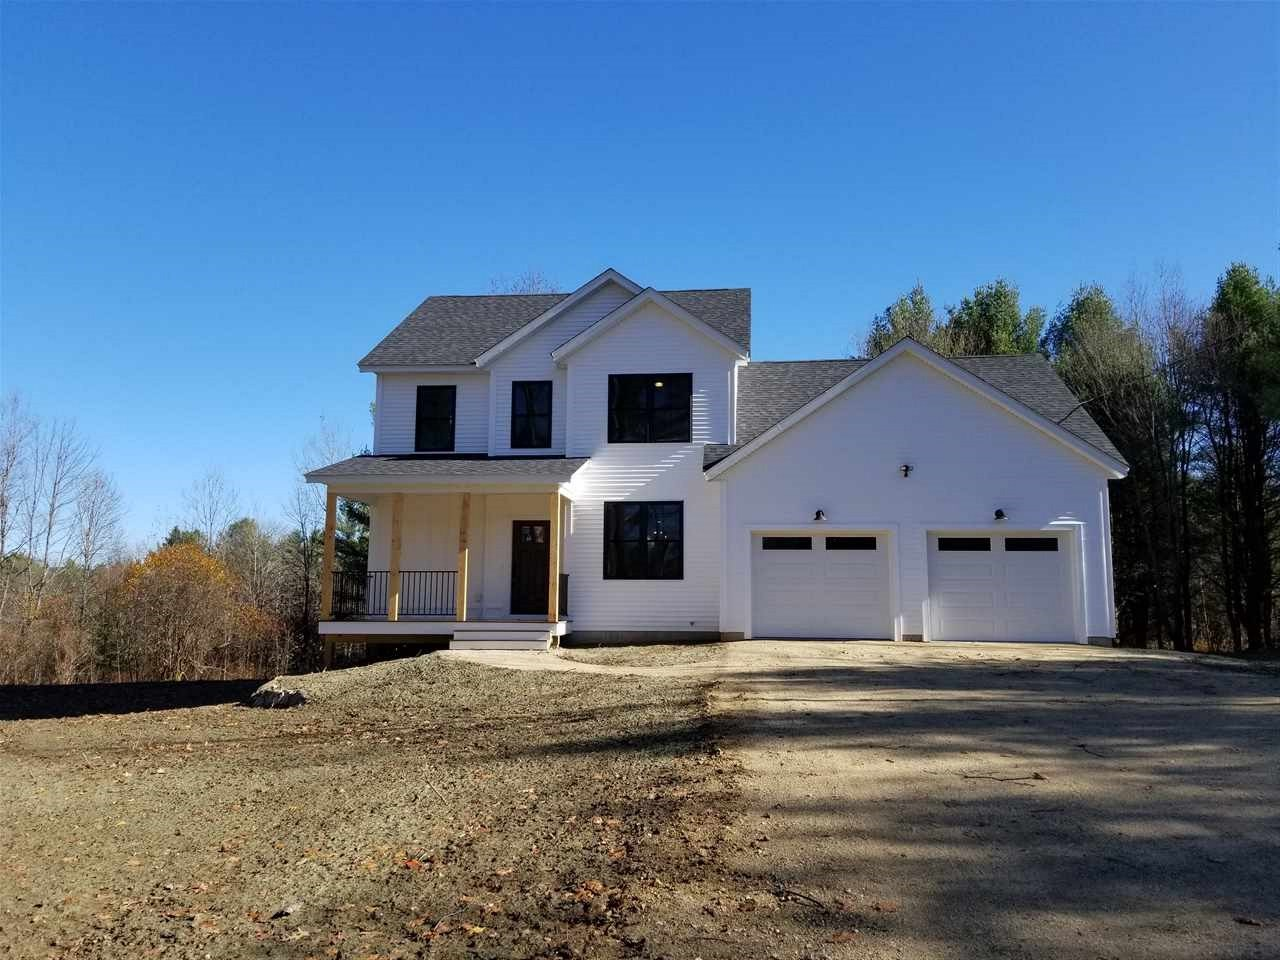 MLS 4783806: 15 Old Ashburnham Road, Rindge NH